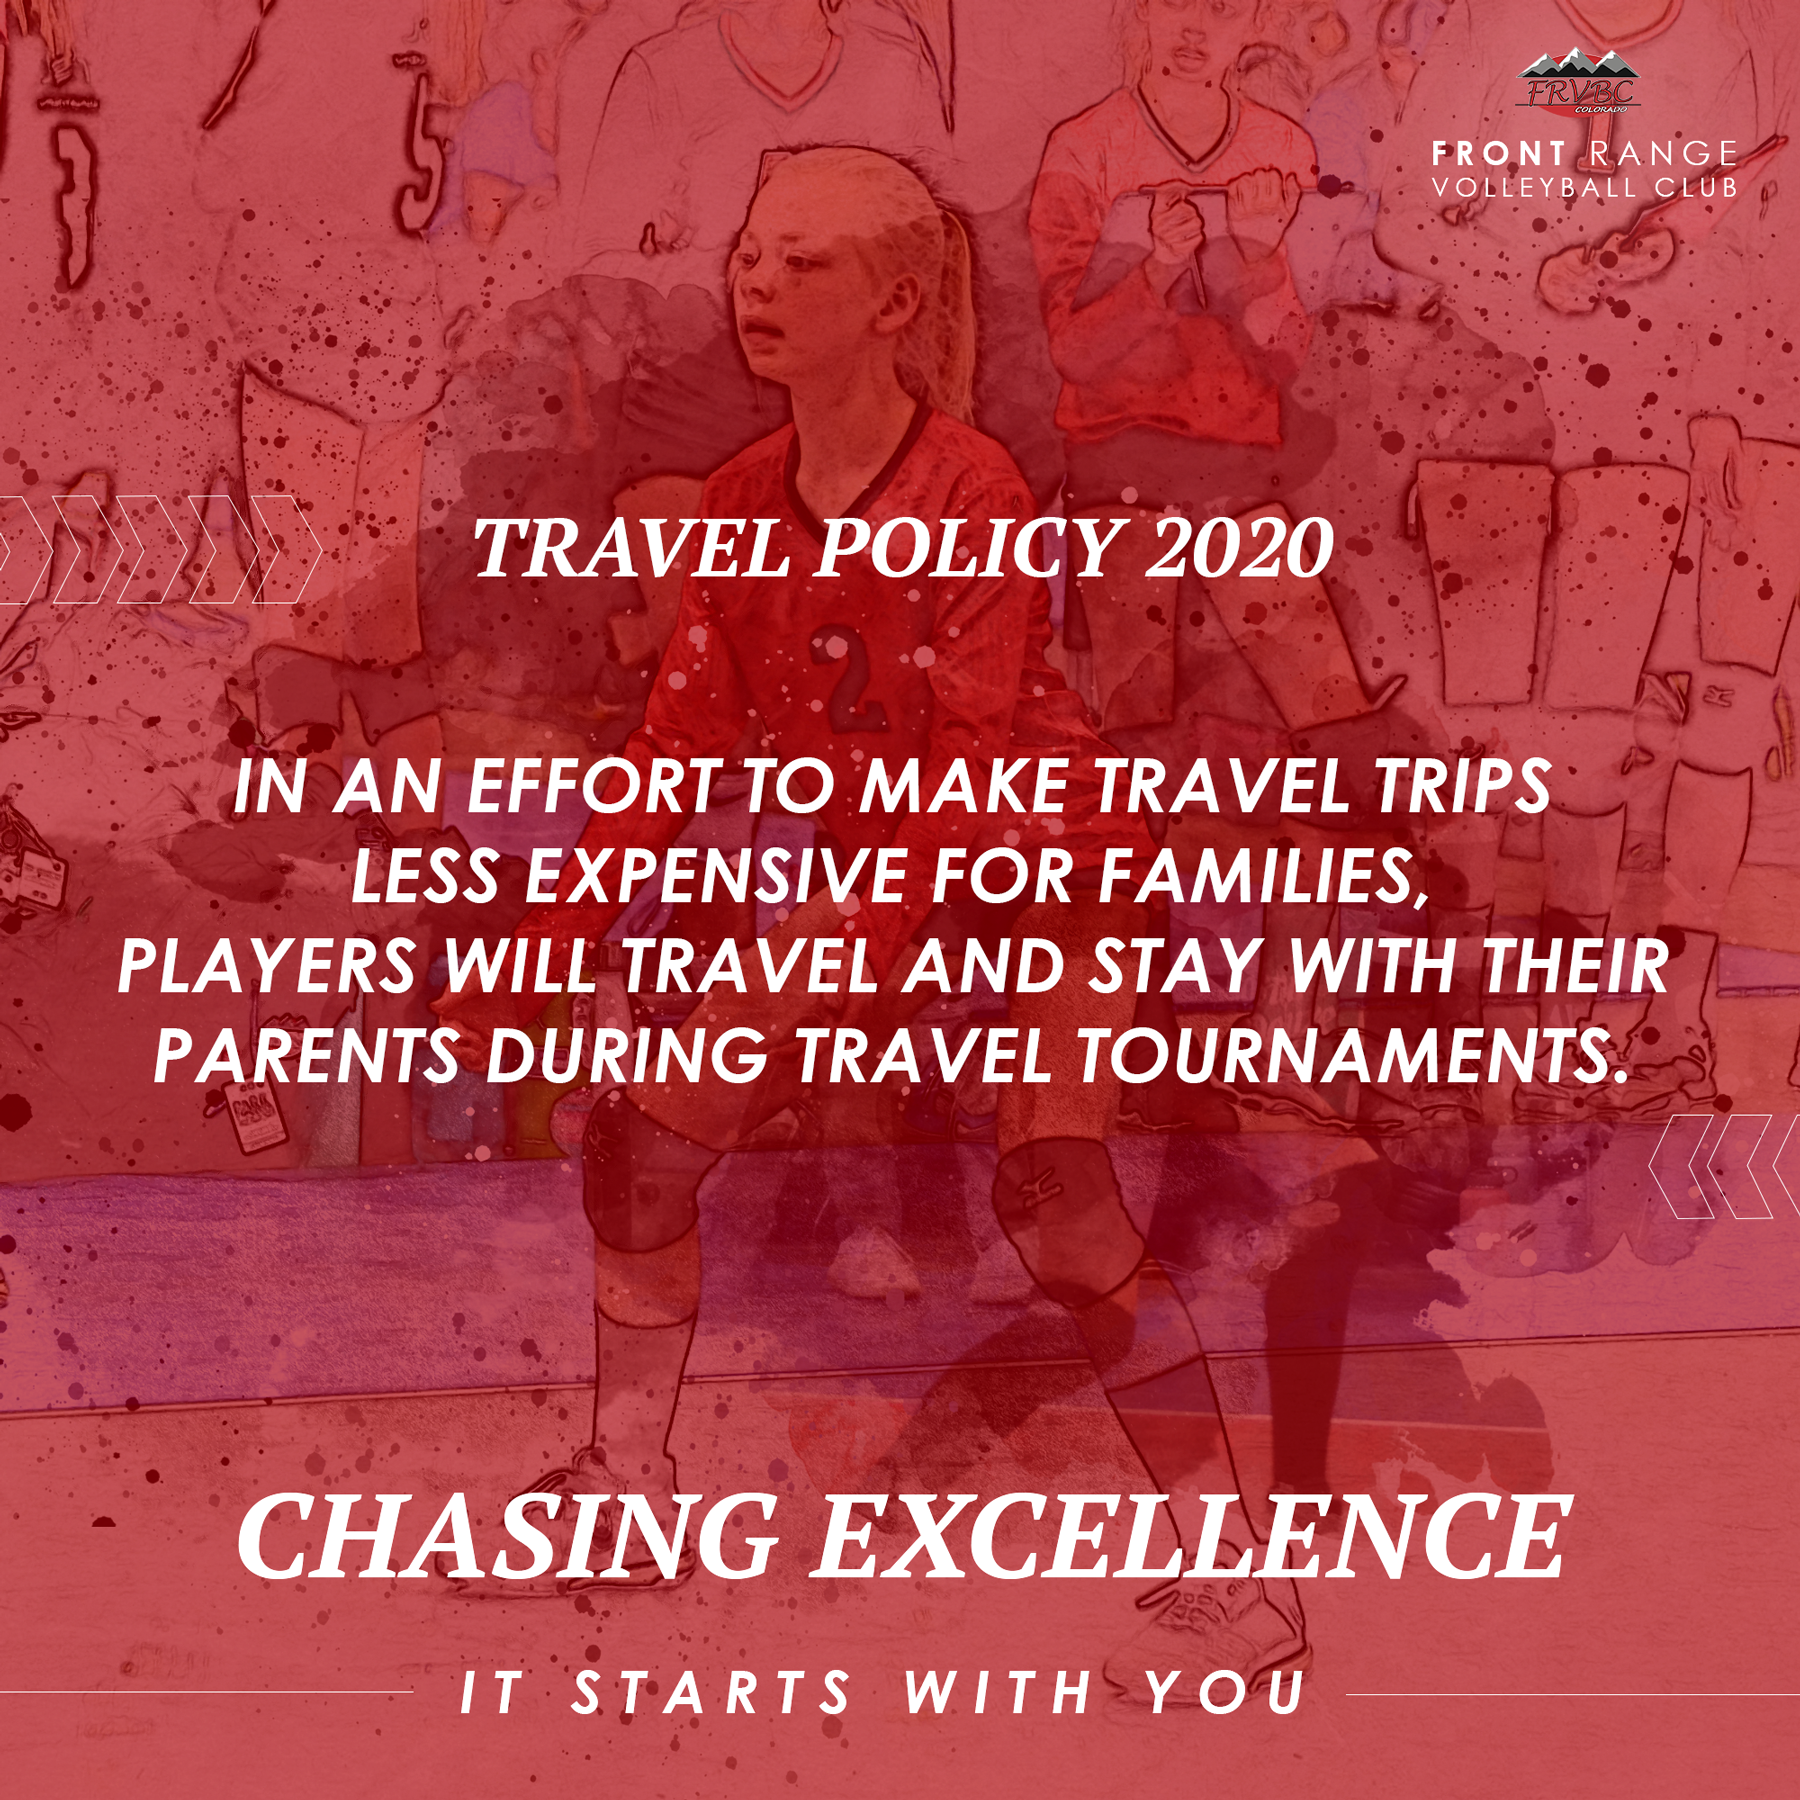 https://frvbc.com/wp-content/uploads/2019/06/TravelPolicy-Post.png